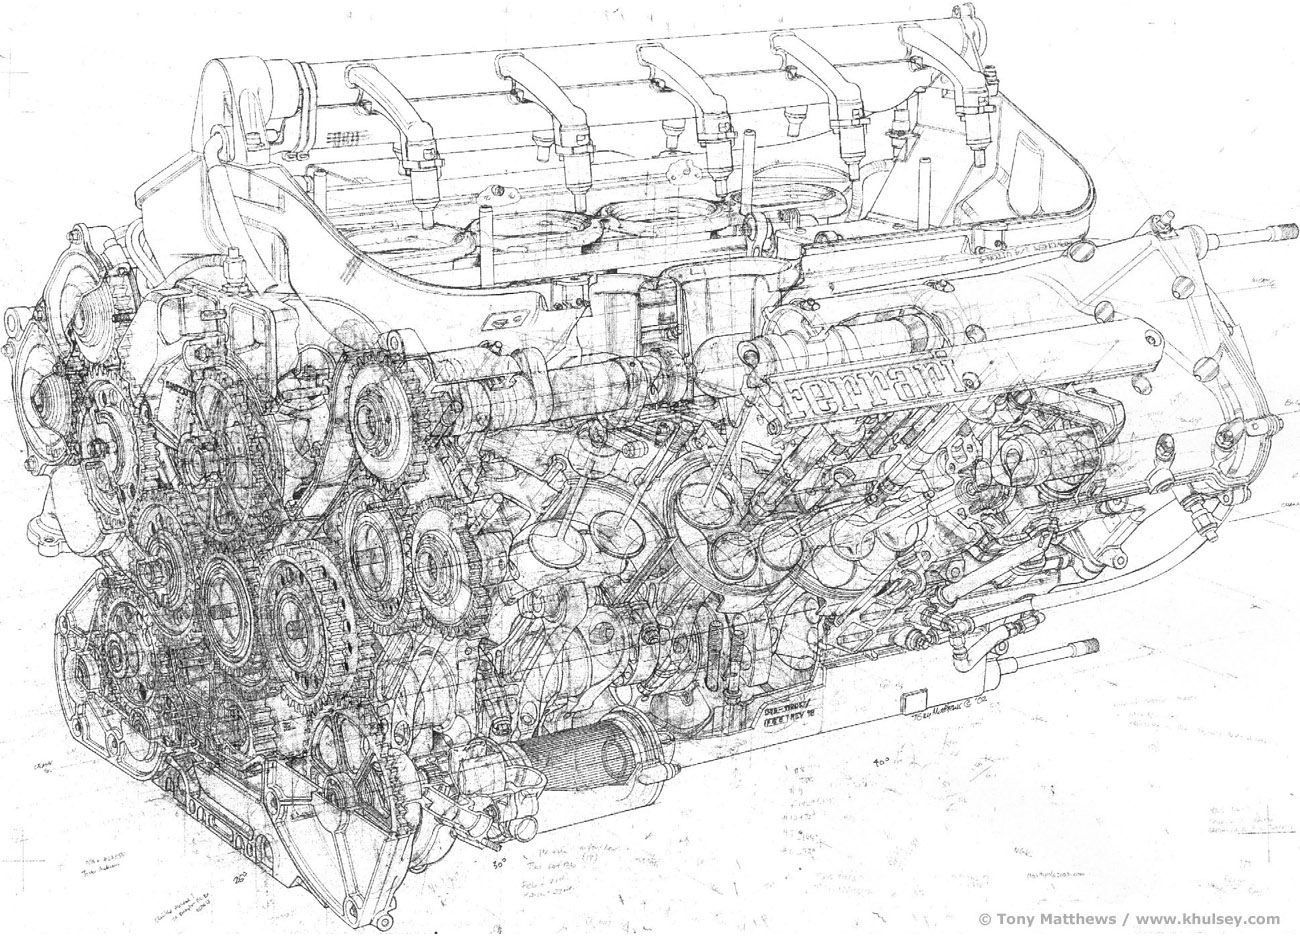 small resolution of complete ferrari f1 engine drawing by t matthews